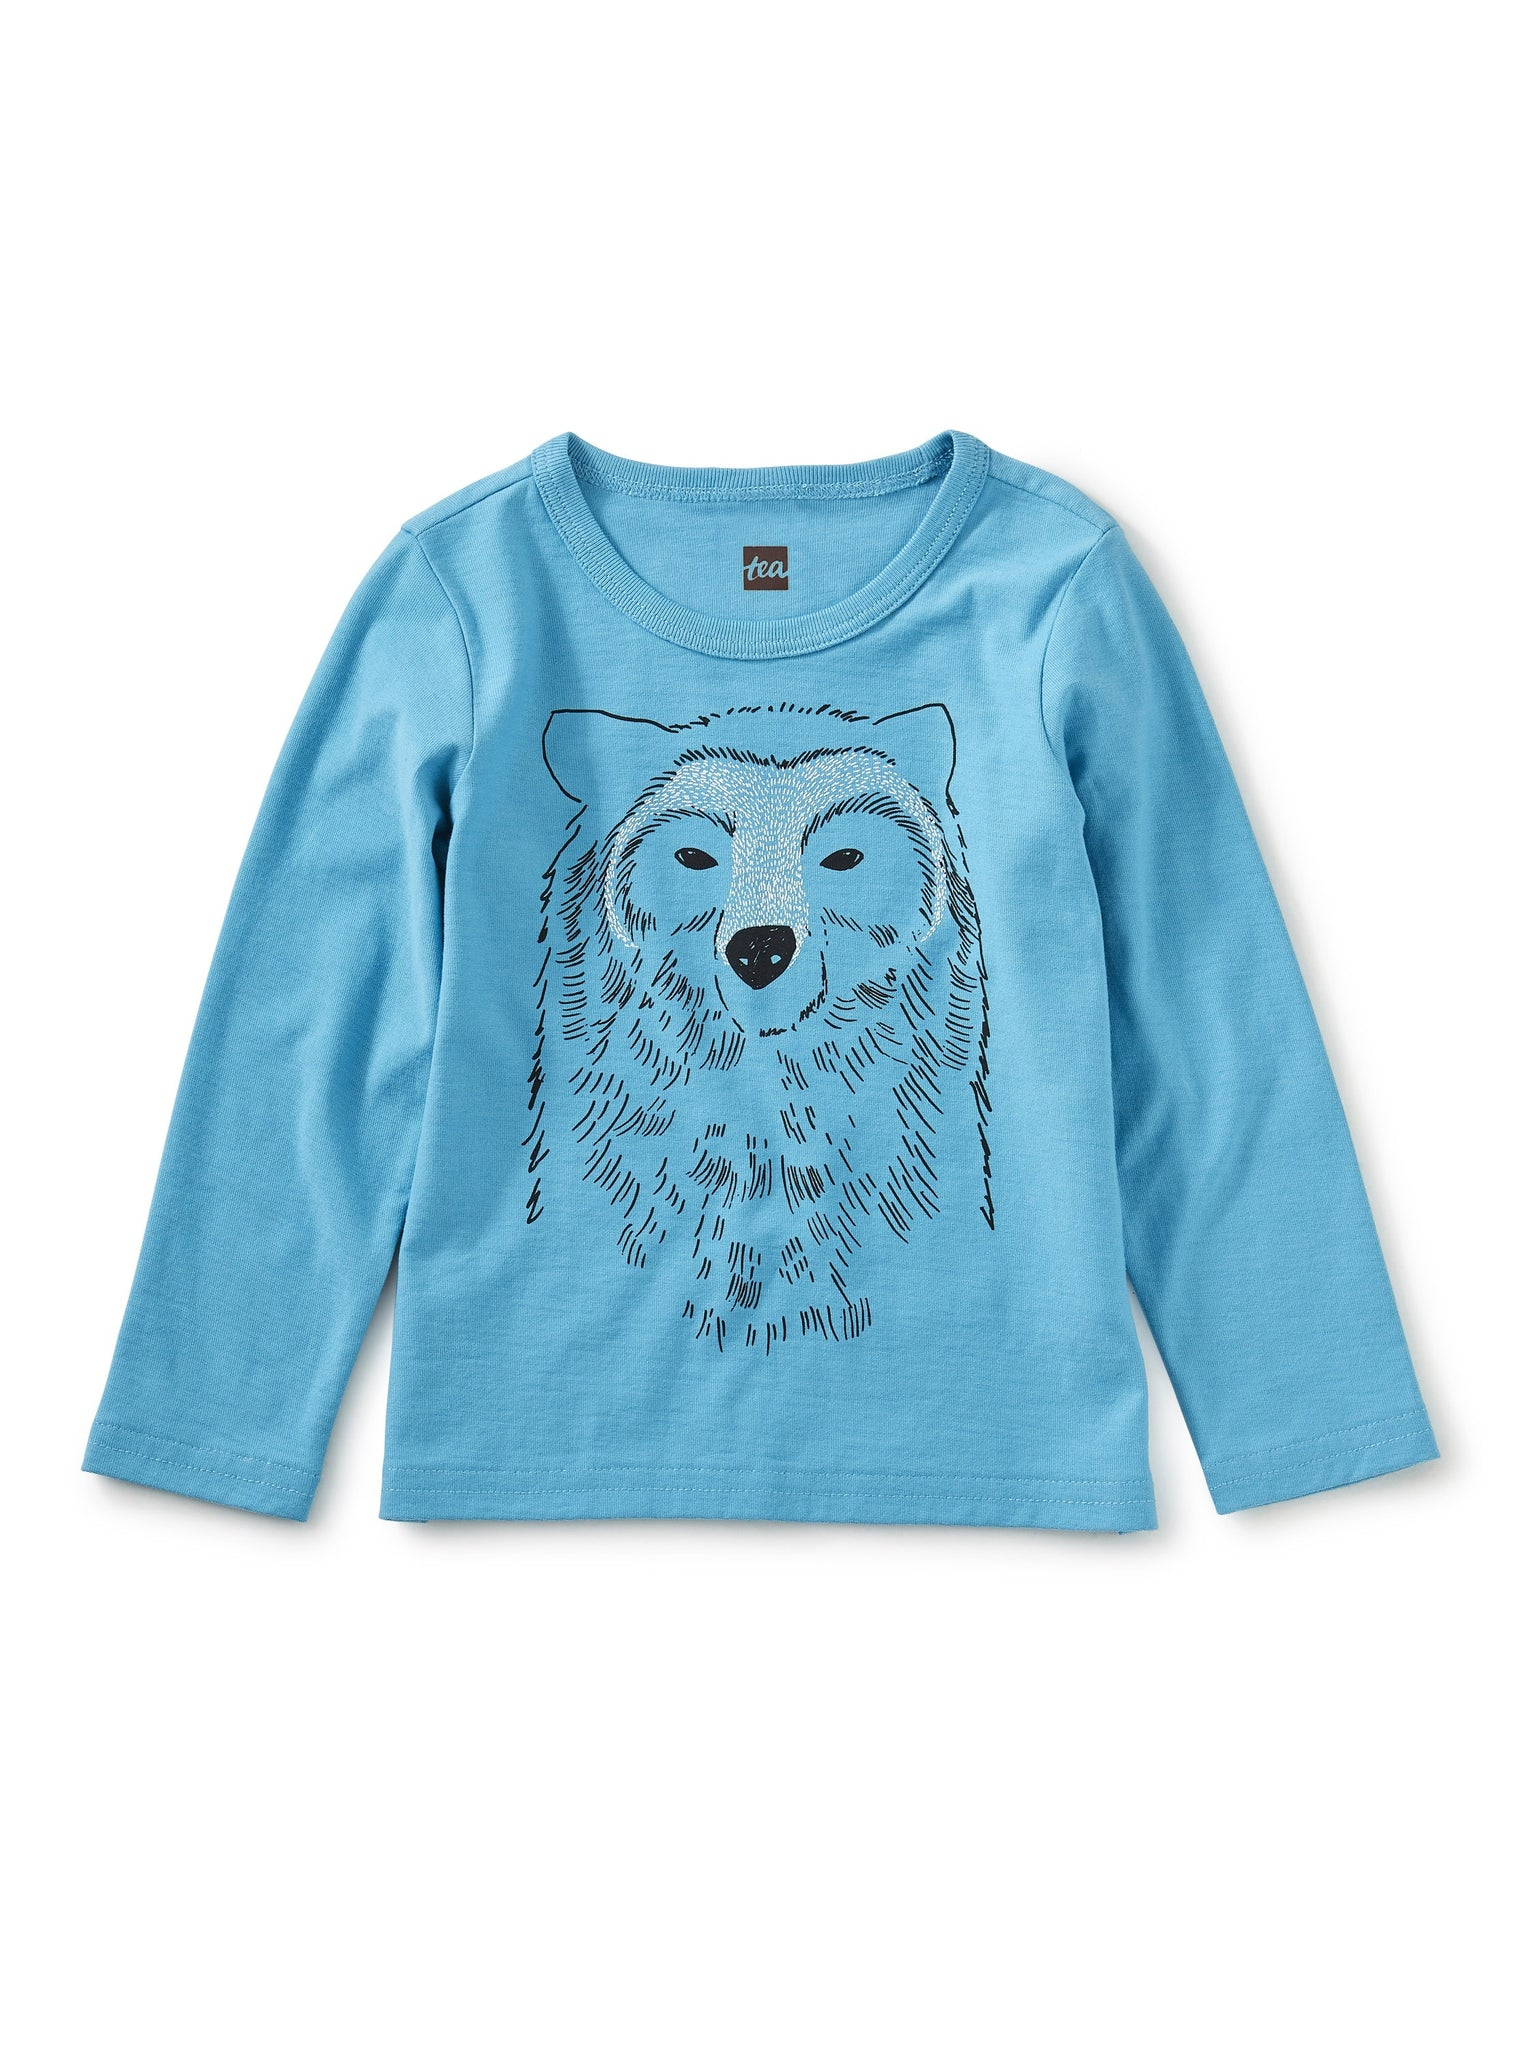 Bear All Graphic Tee